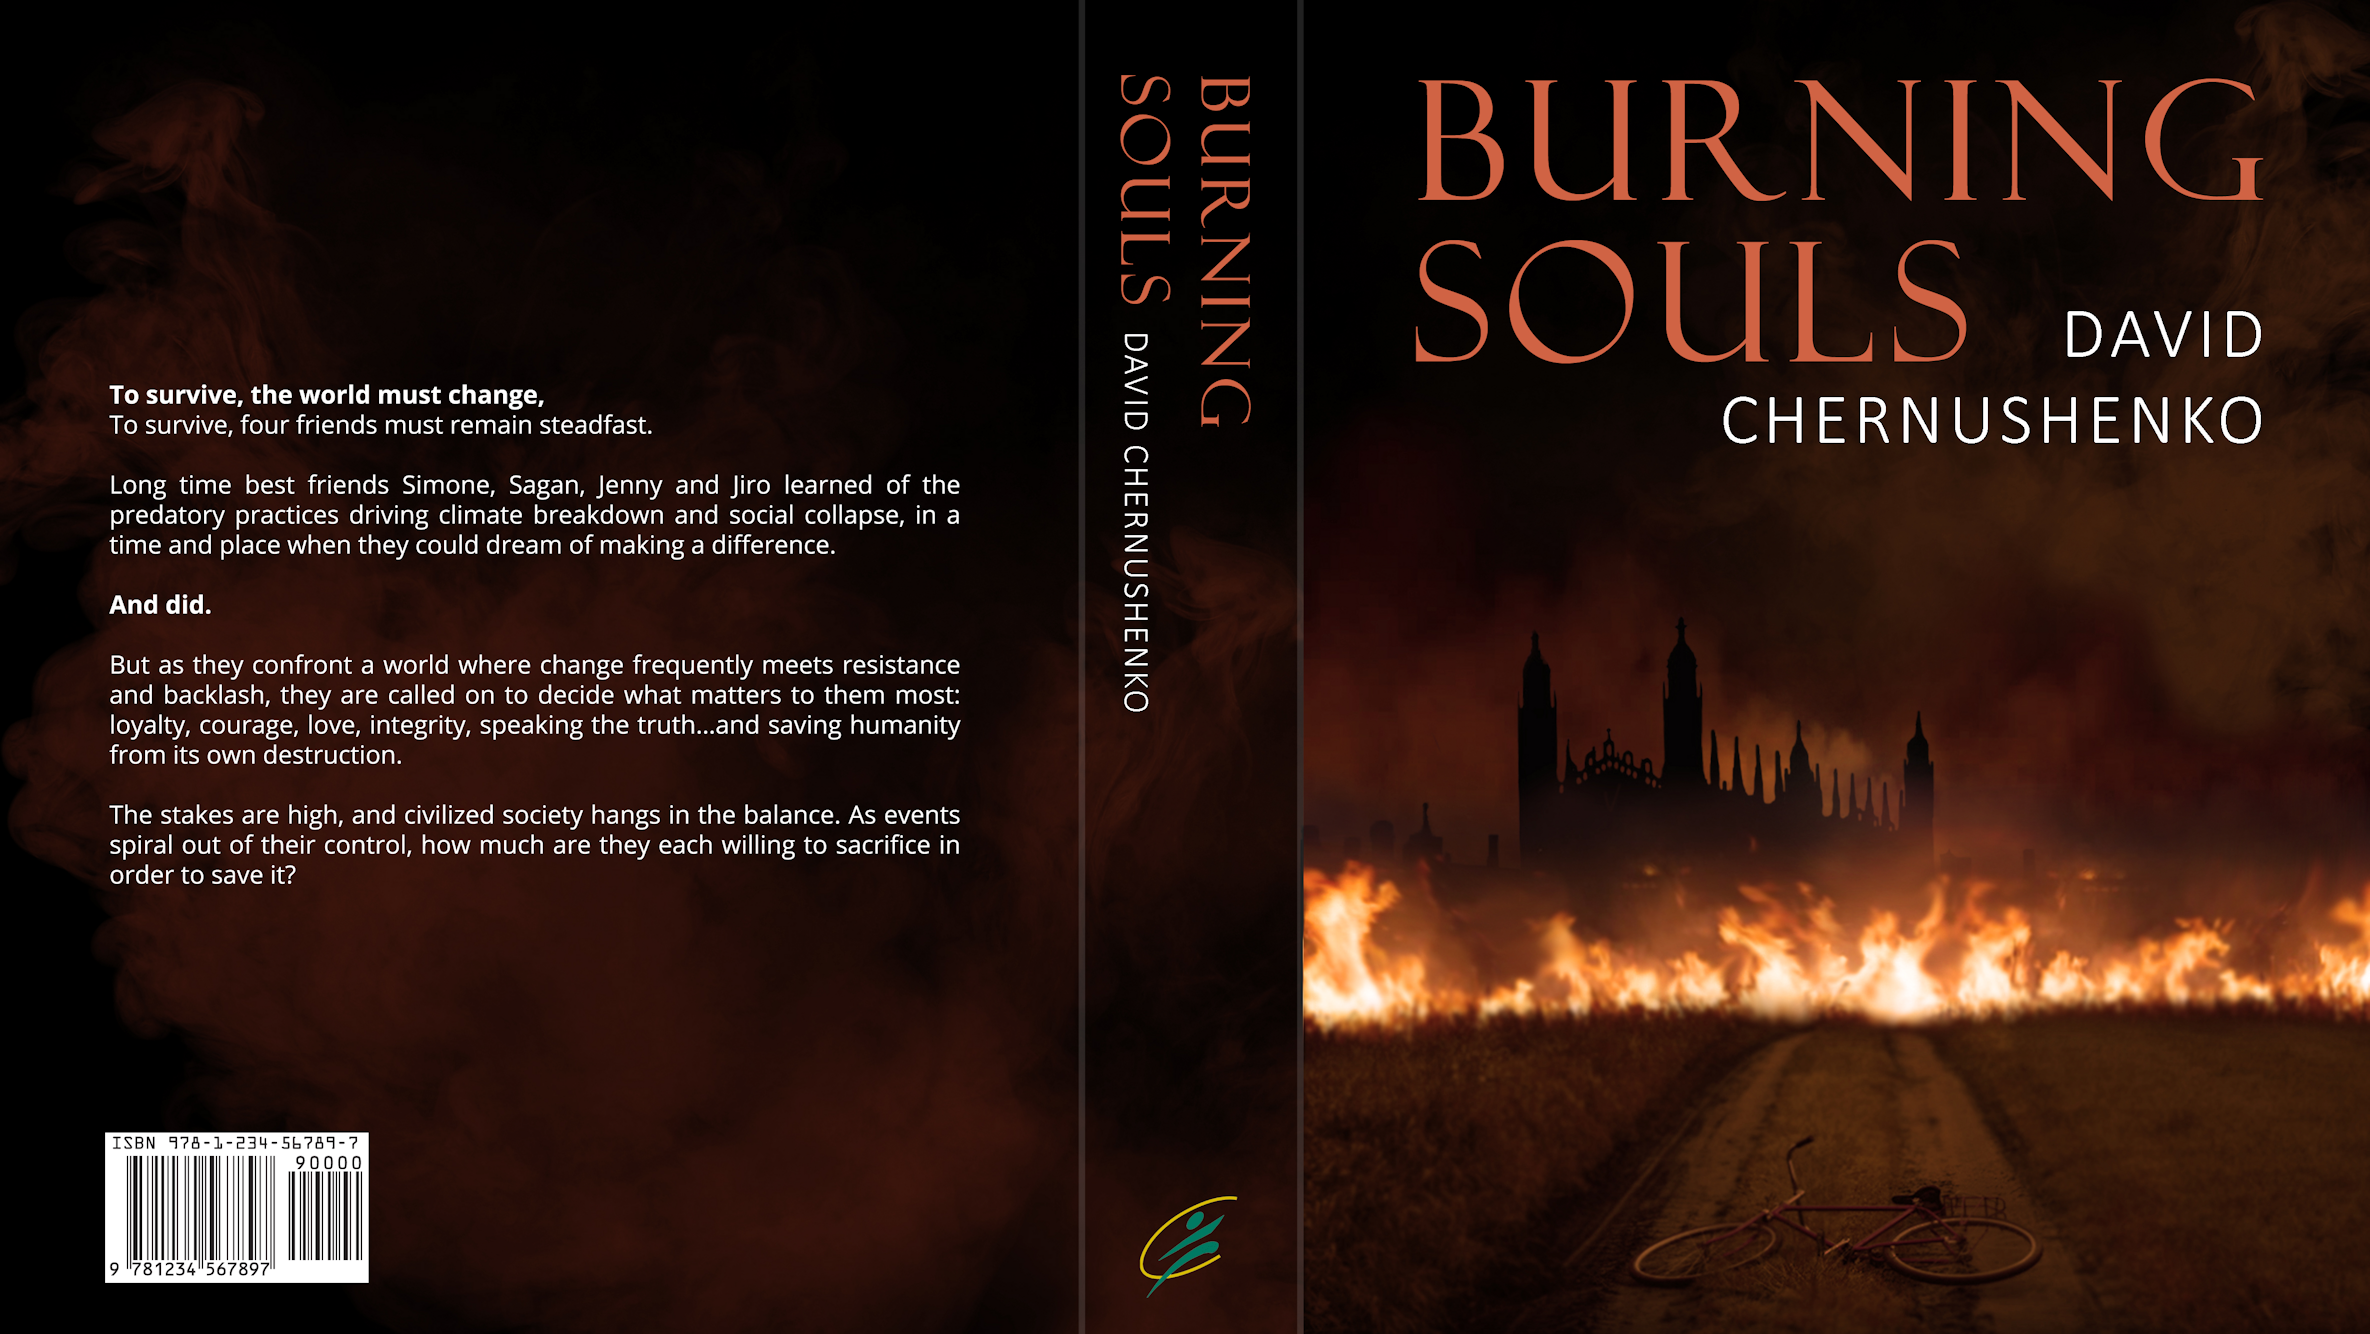 Burning Souls Book Cover 2019 David Chernushenko